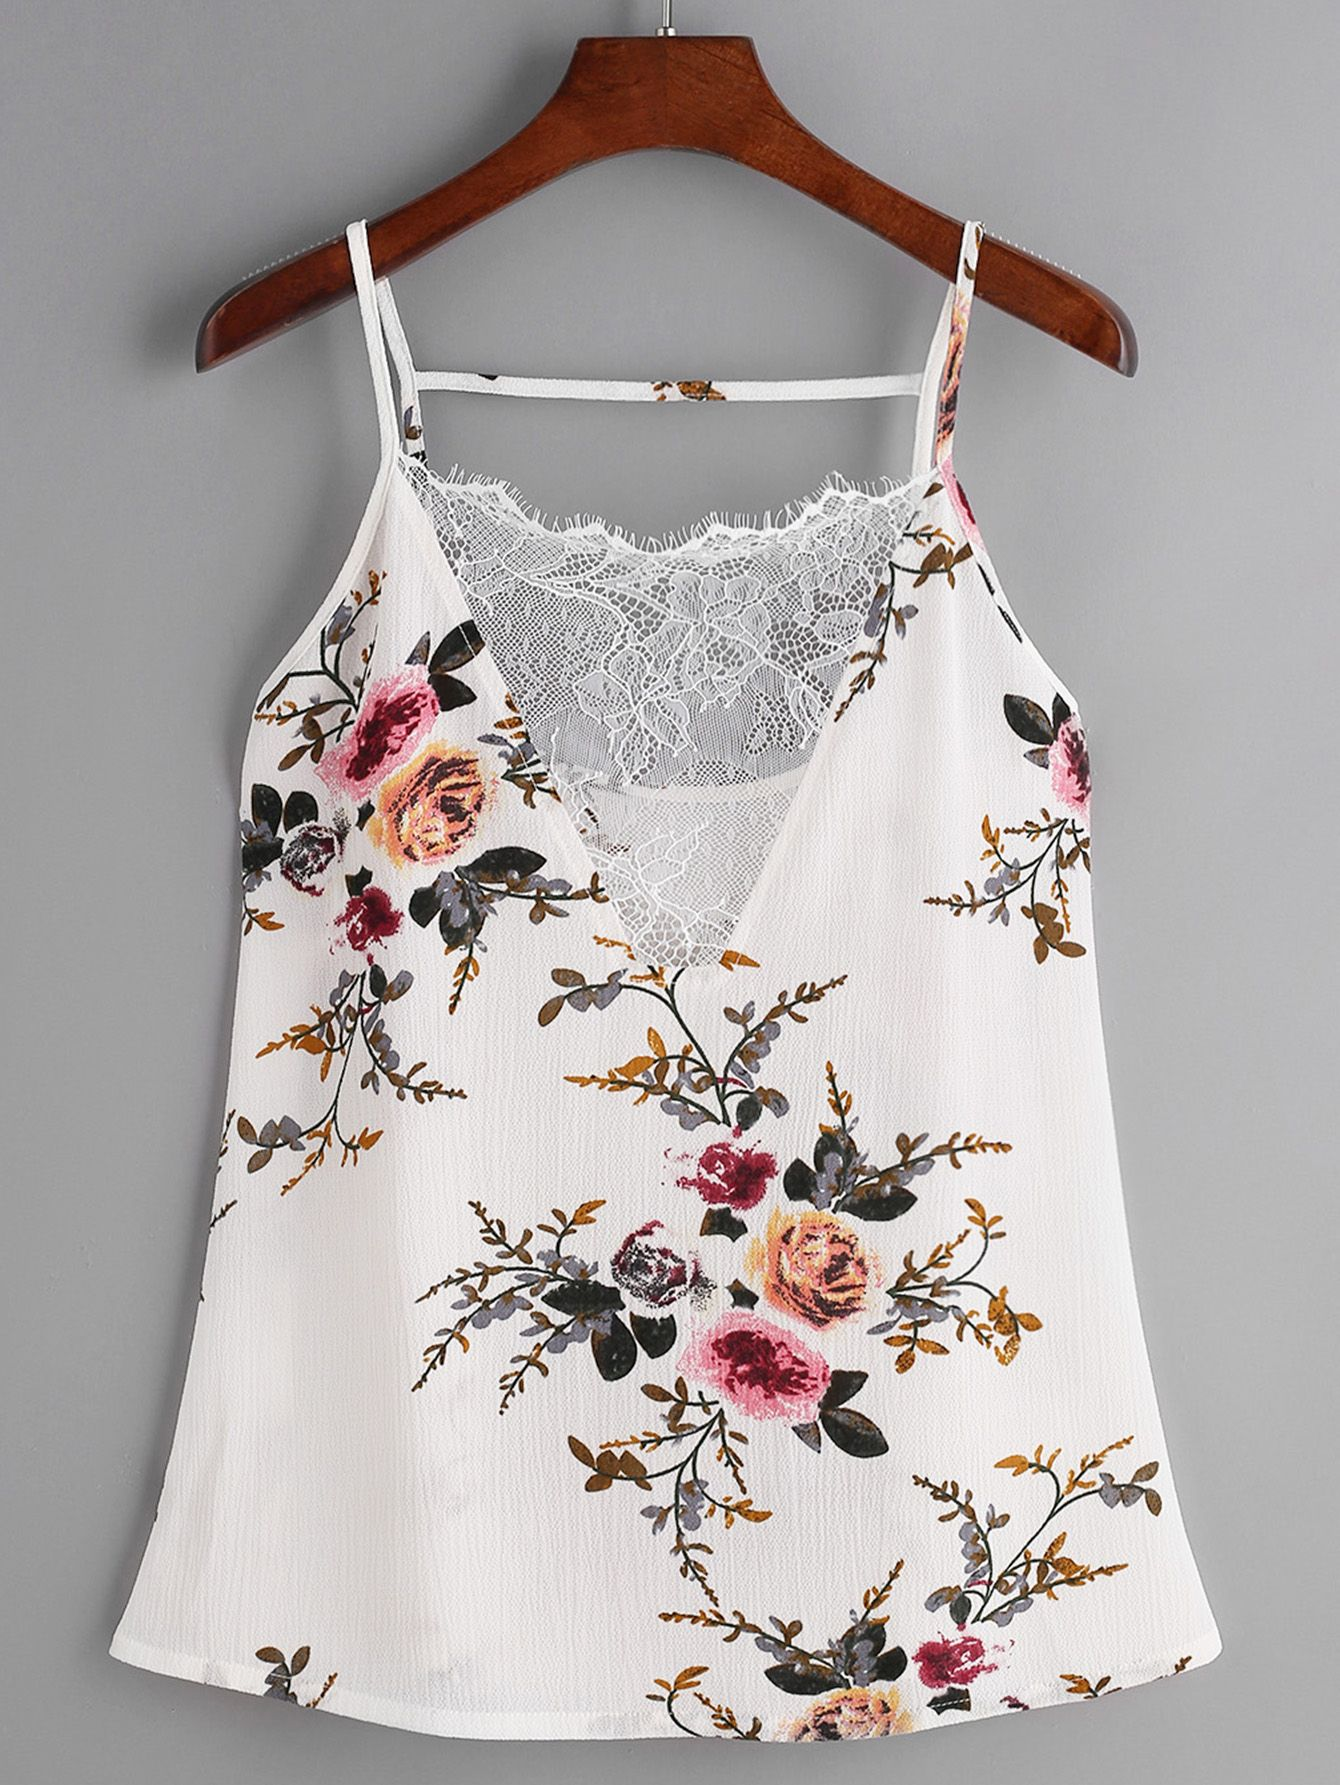 d727c7b092 Shop Floral Print Lace V-Neck Cami Top online. SheIn offers Floral Print  Lace V-Neck Cami Top   more to fit your fashionable needs.